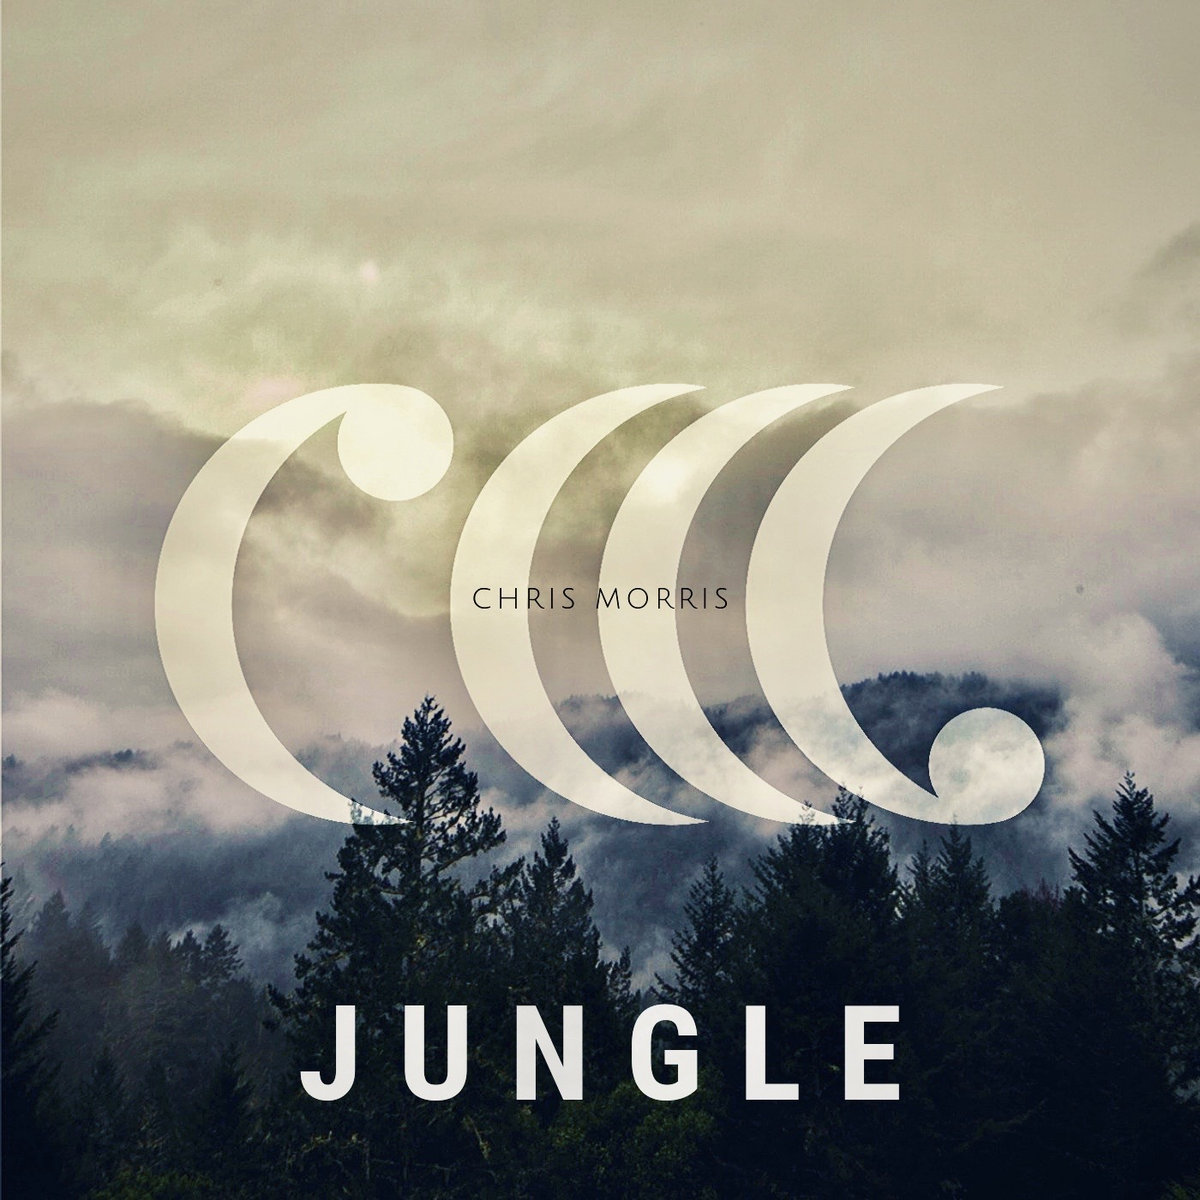 Jungle by Chris Morris